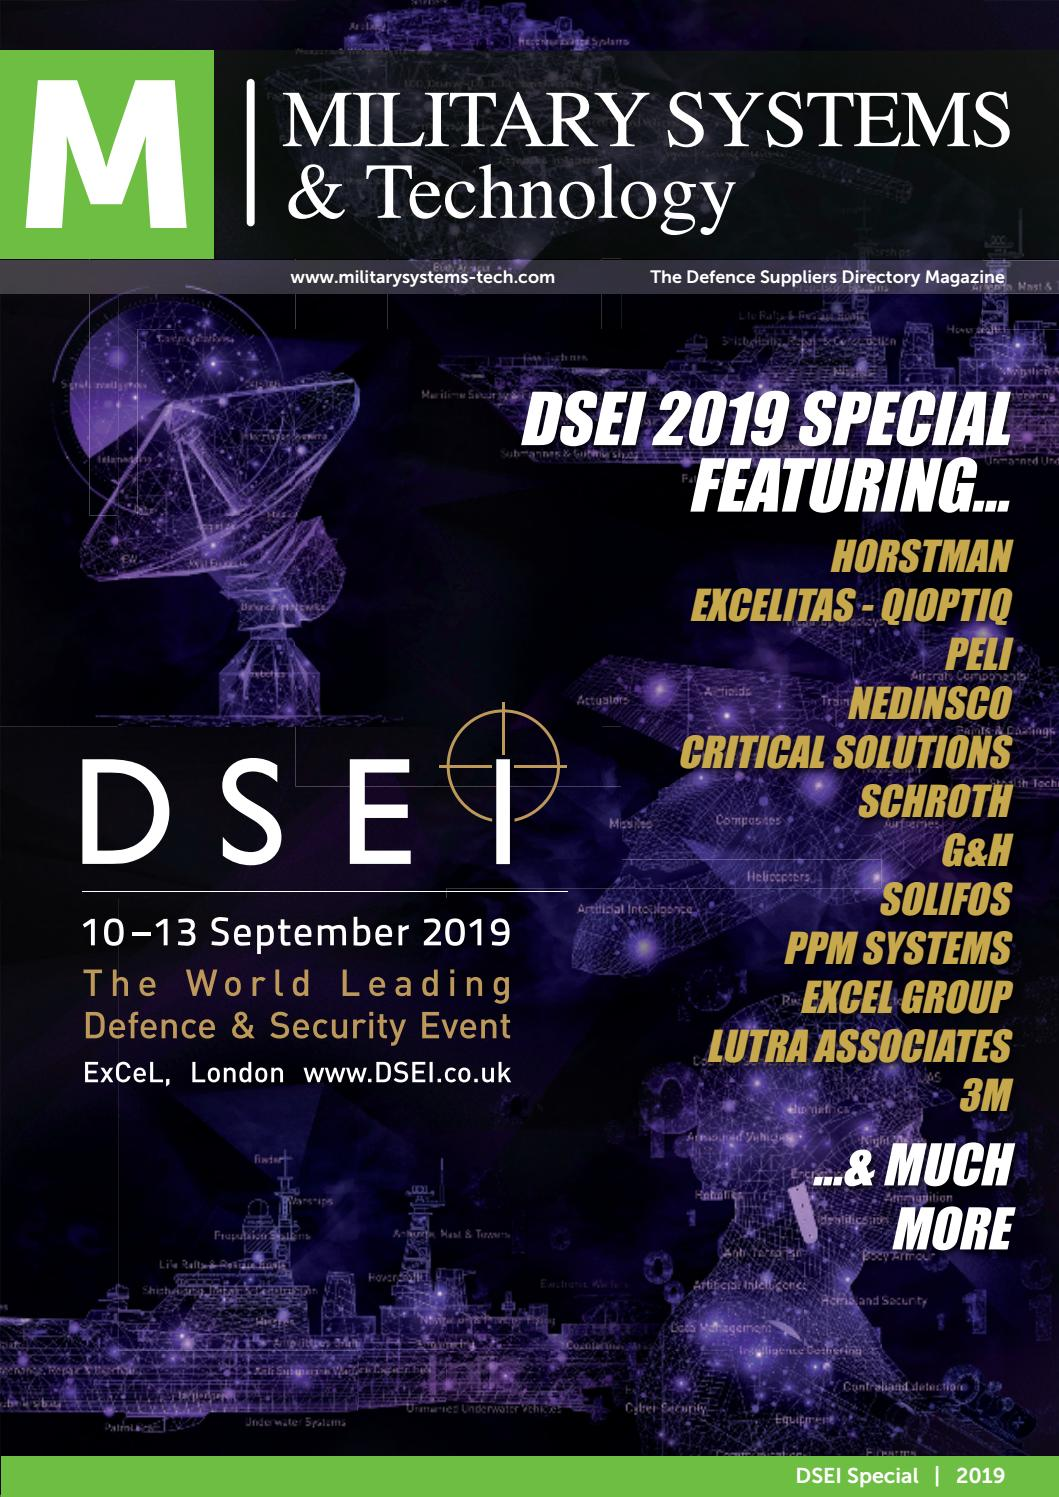 Military Systems Magazine Dsei 2019 By Military Systems And Technology Issuu